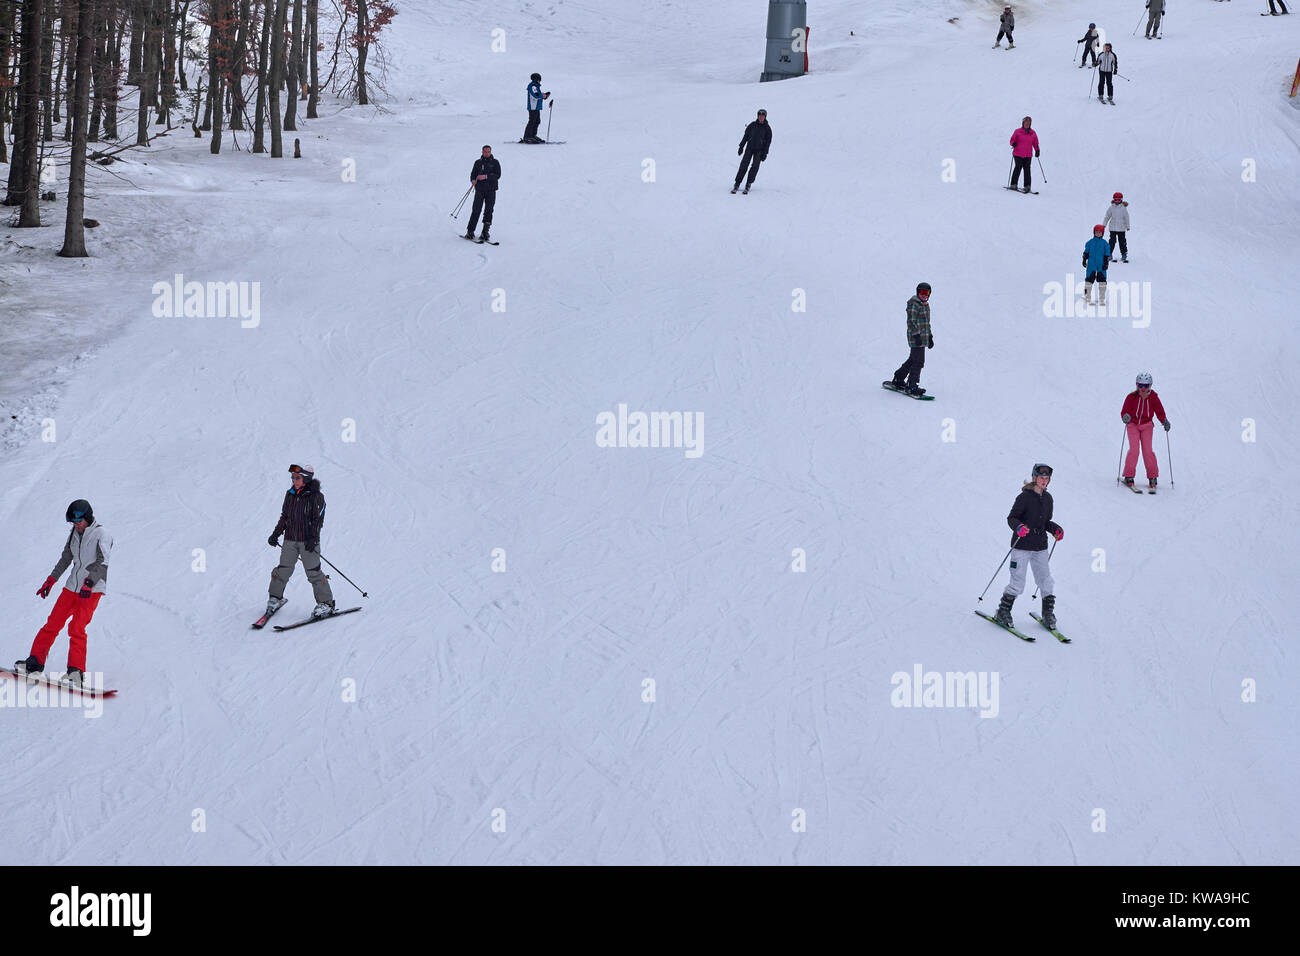 WINTERBERG, GERMANY - FEBRUARY 16, 2017: Many skiers and snowboarders on a piste at Ski Carousel Winterberg - Stock Image